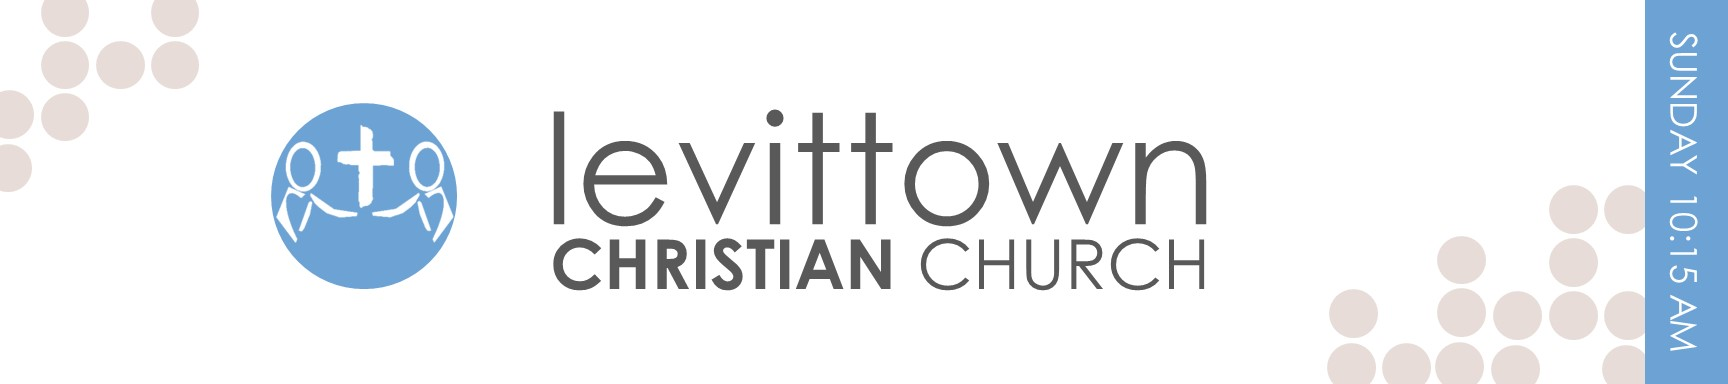 Levittown Christian Church